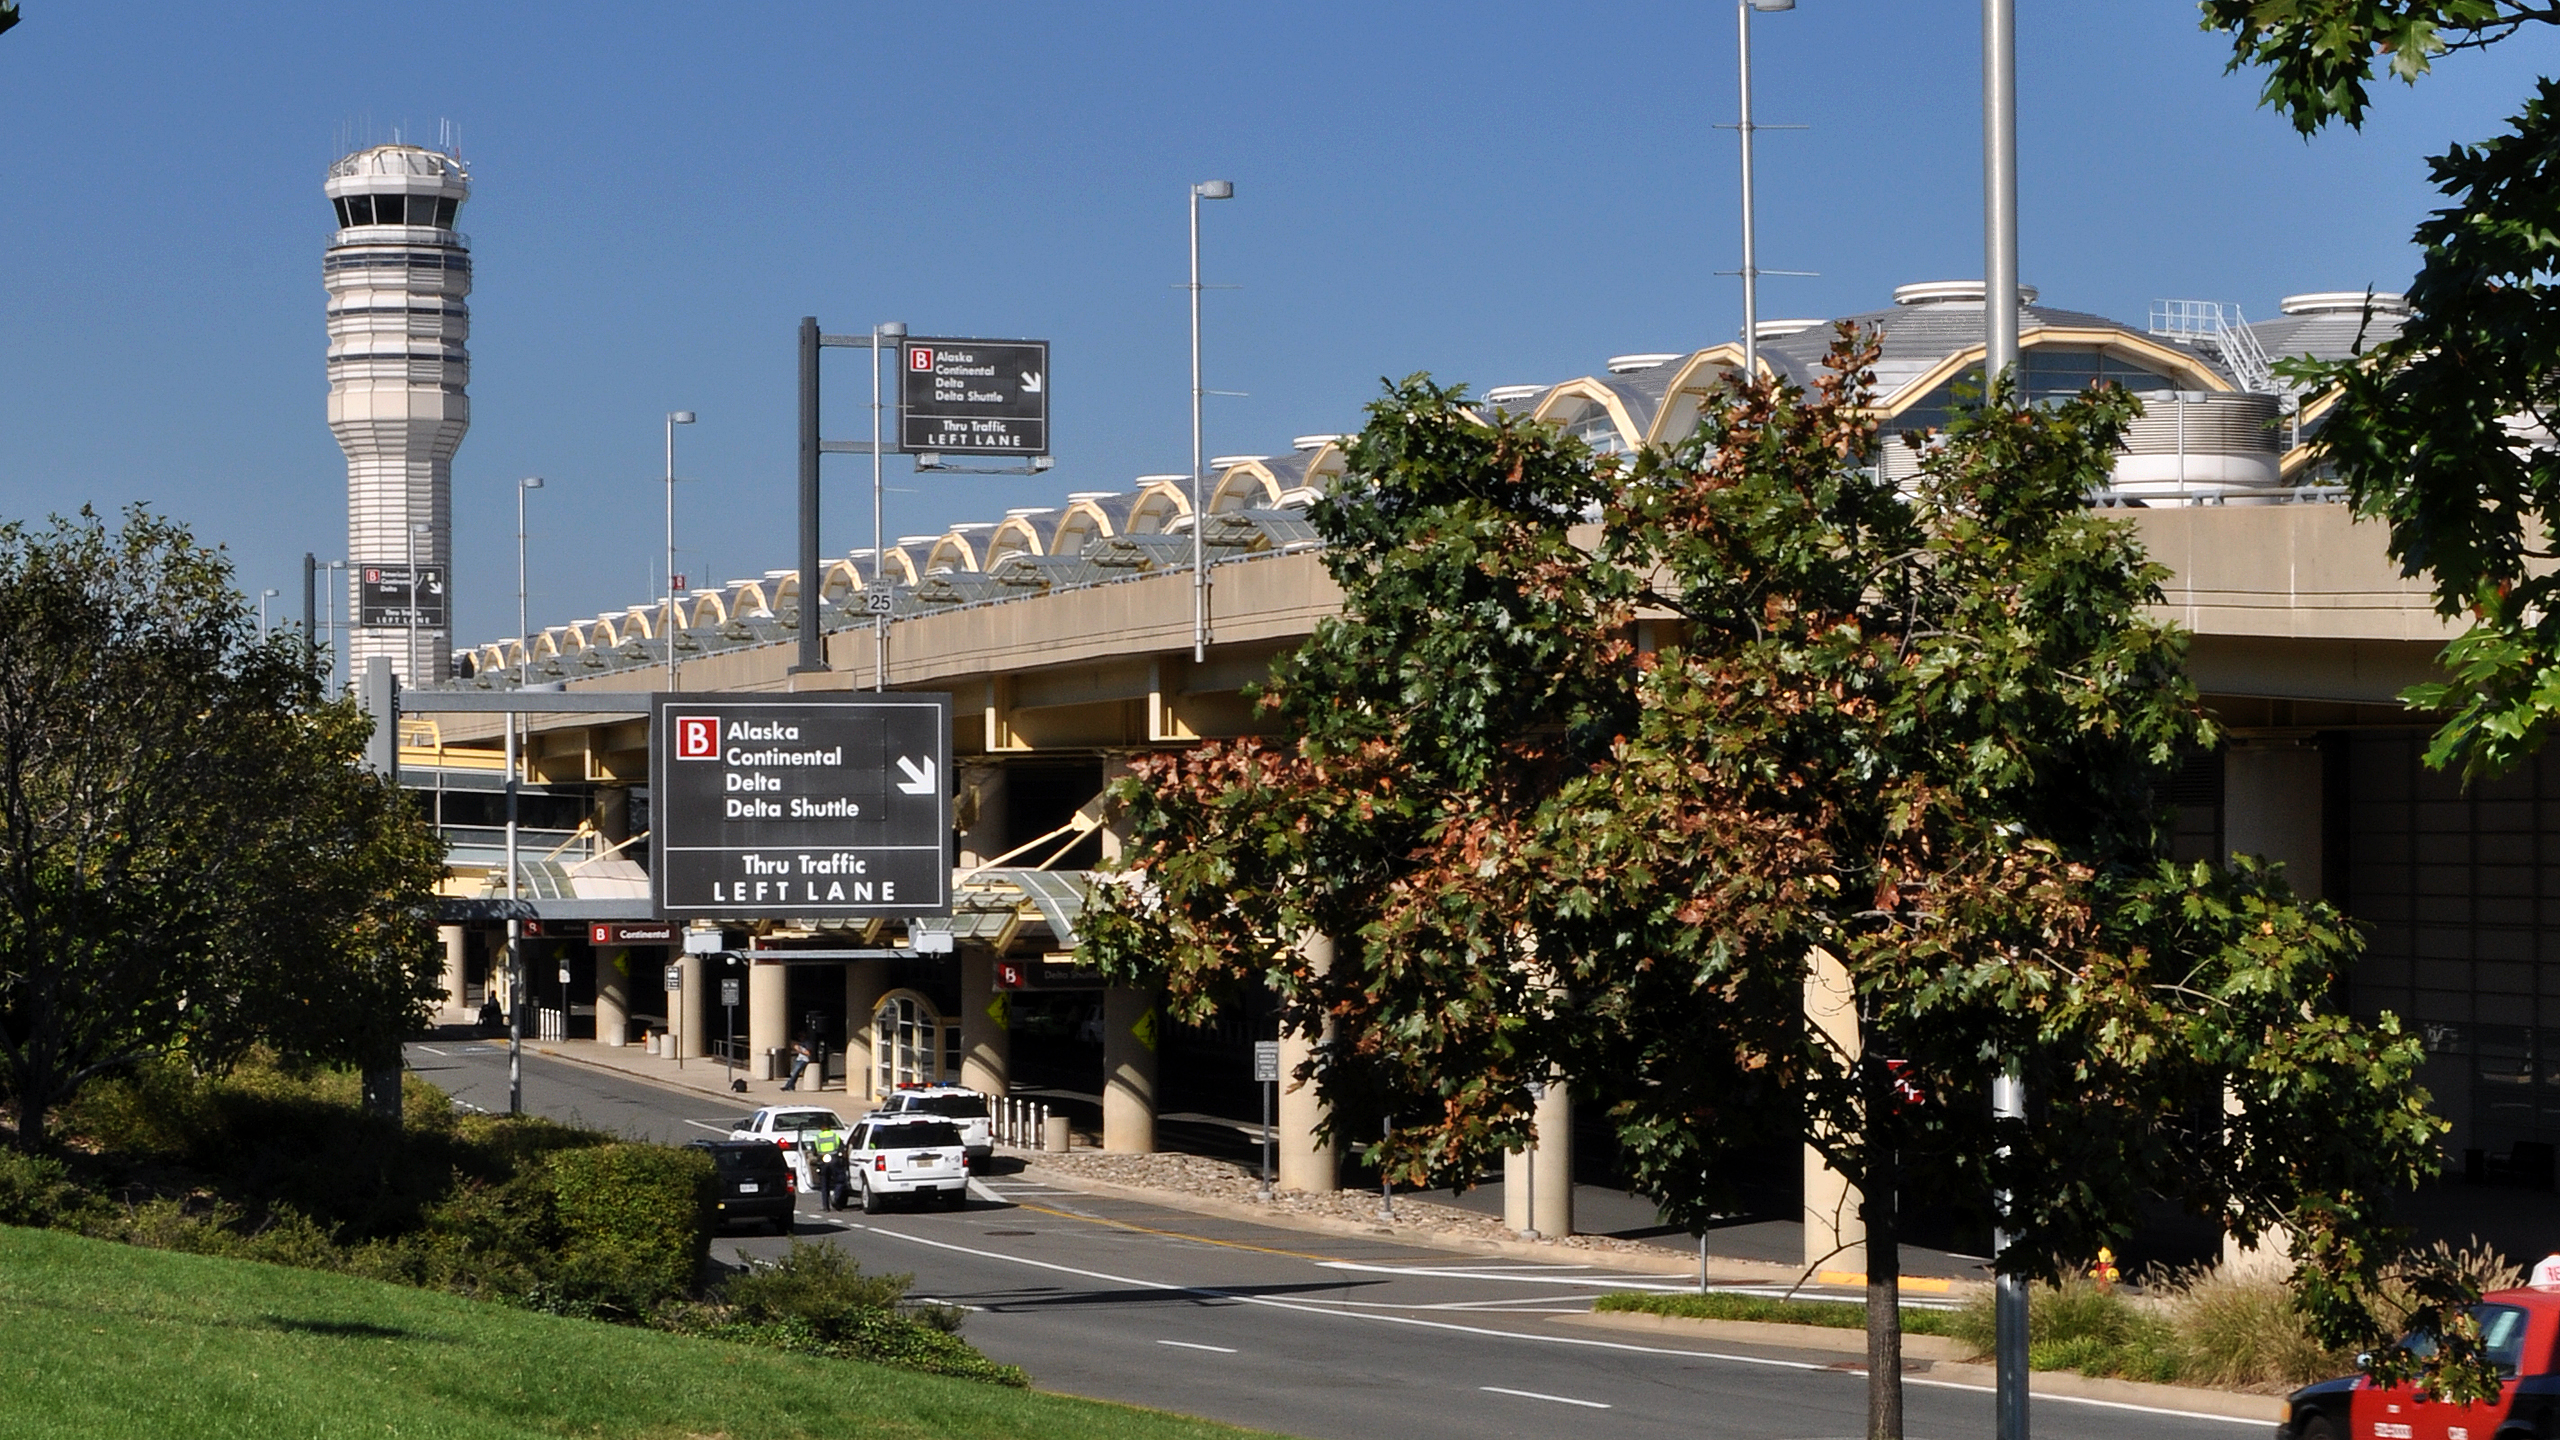 North Terminal – Reagan Washington National Airport / image 7